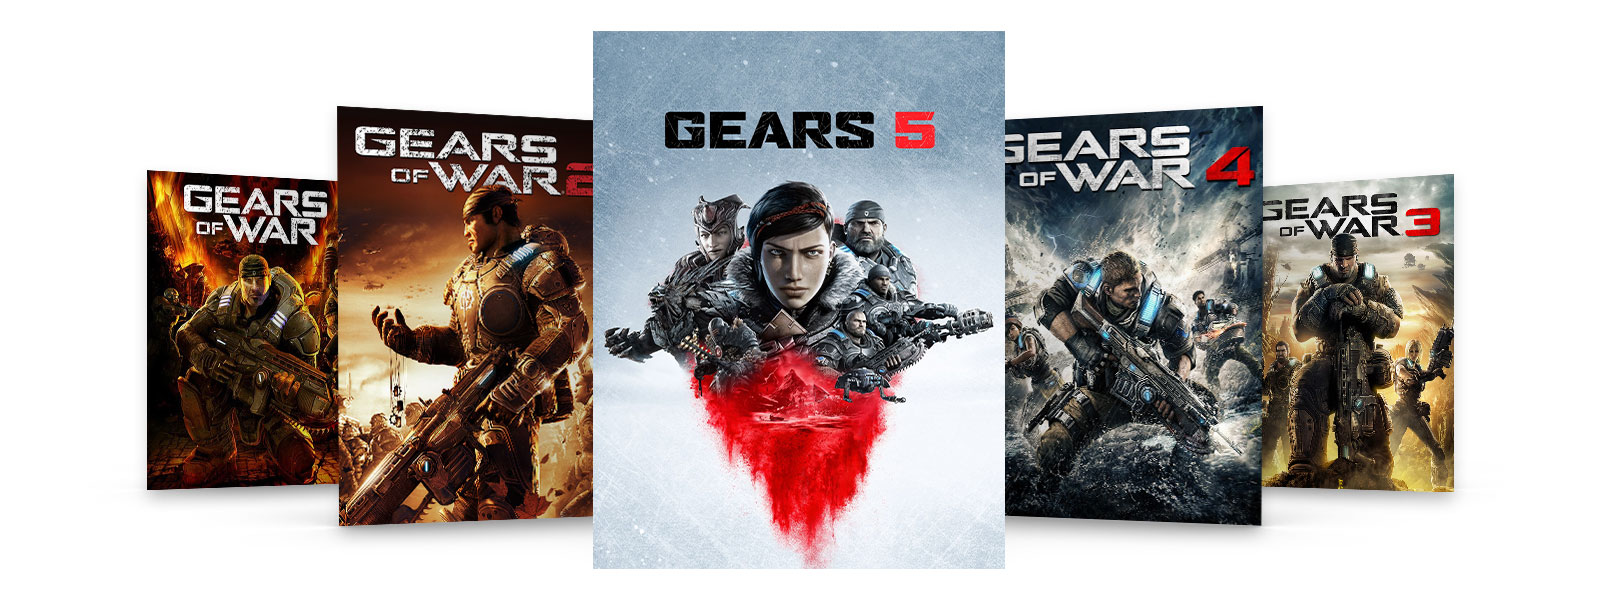 Box art of Gears of War 5 and Gears 2, 3, and 4.